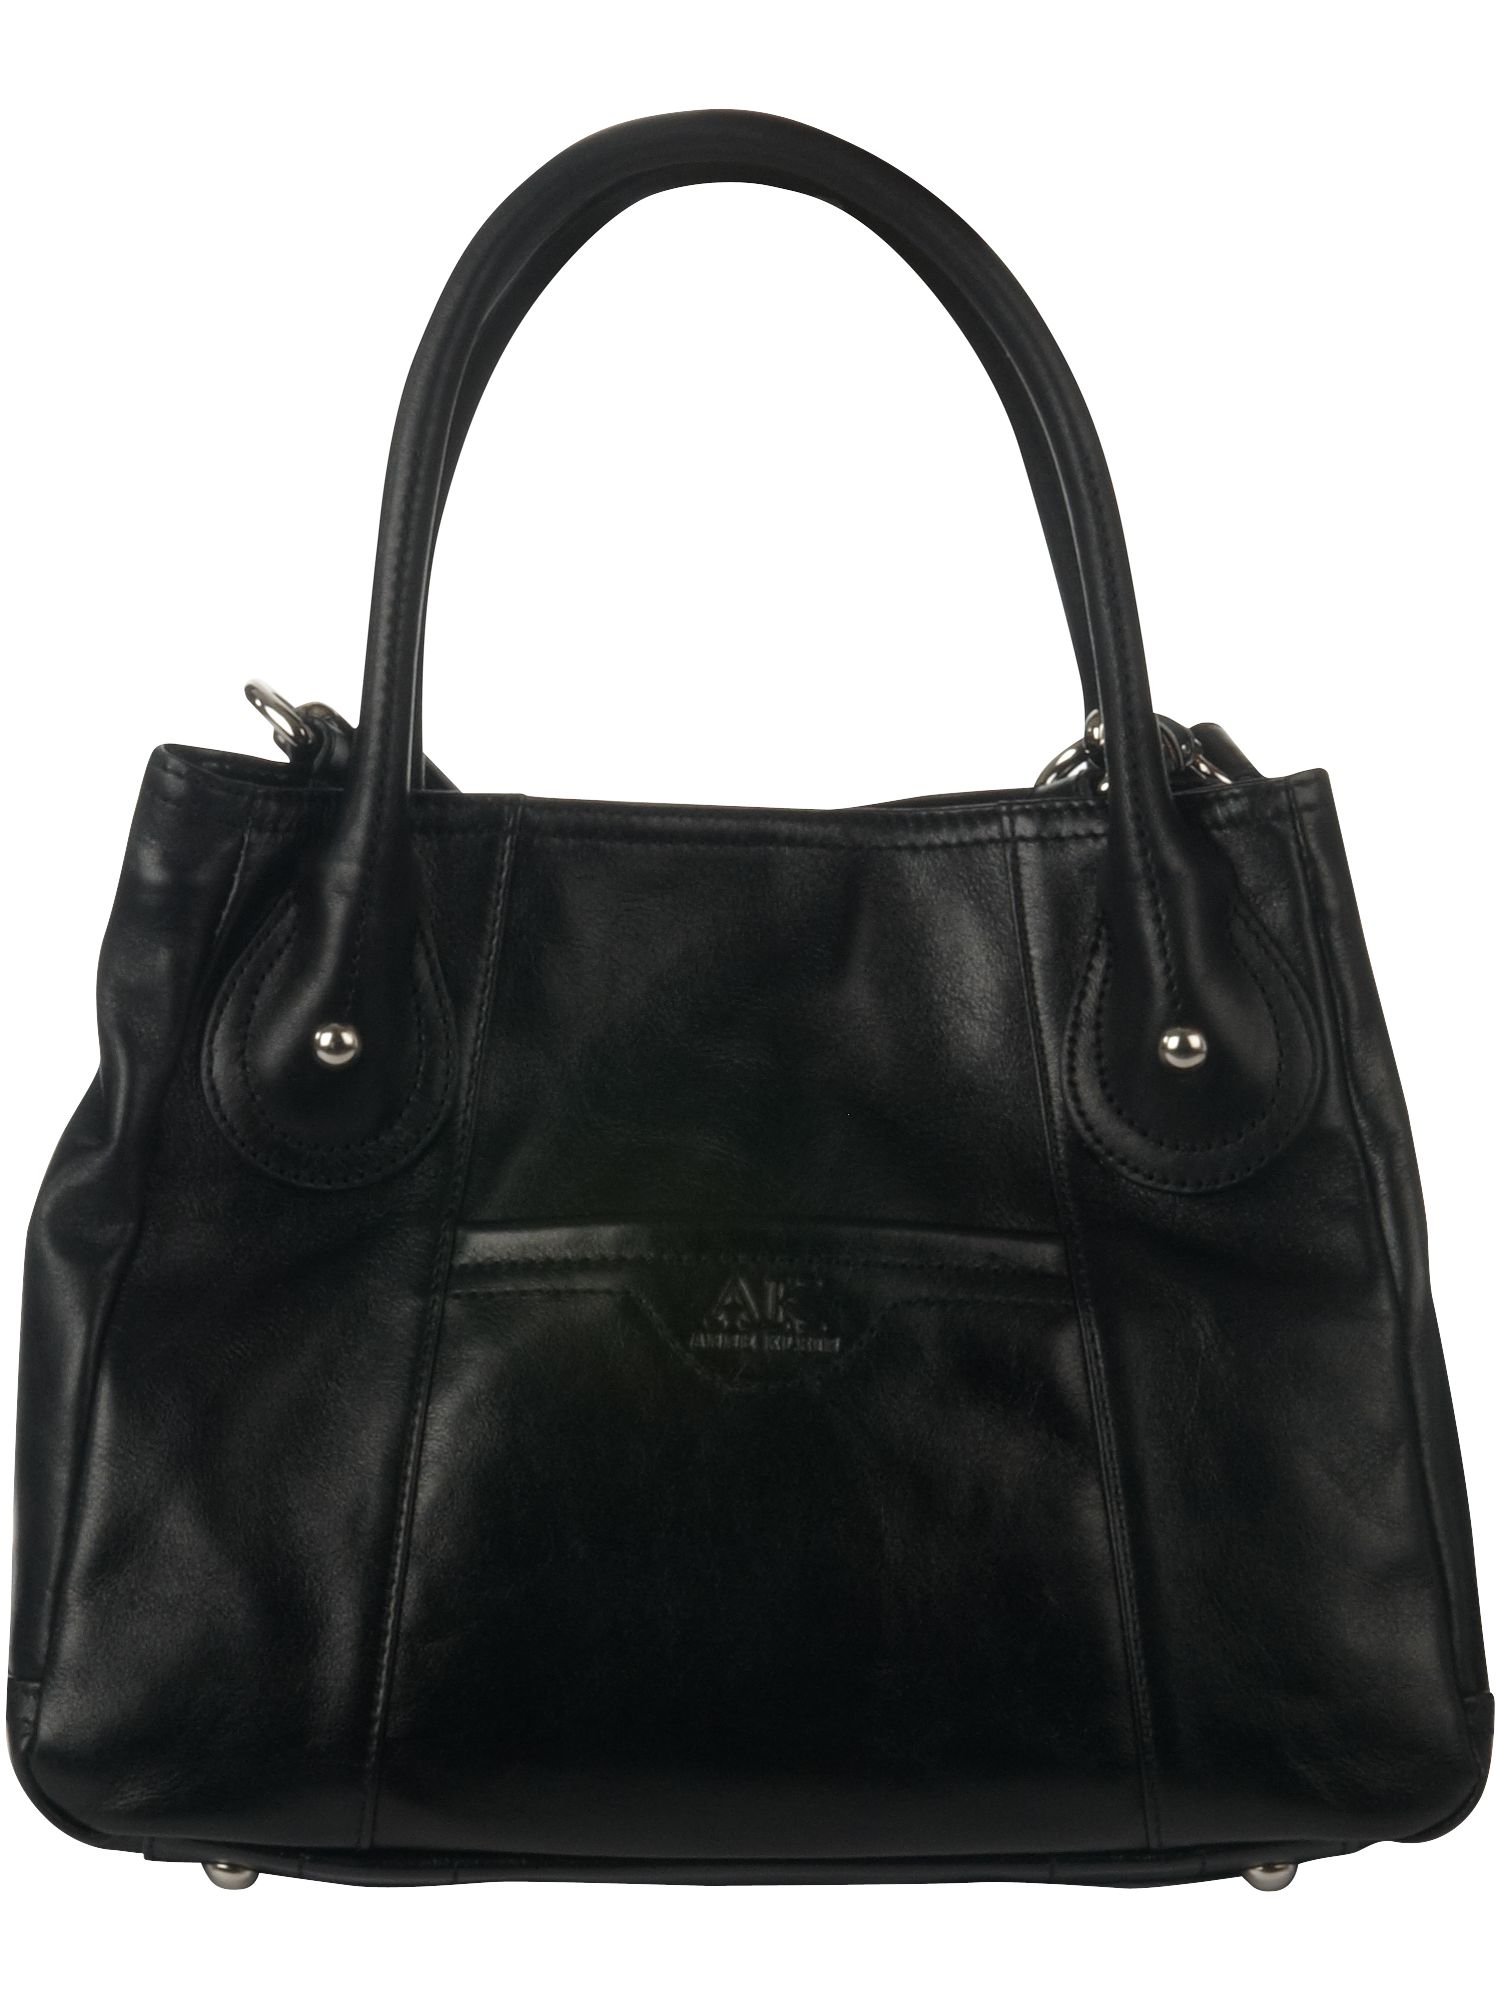 AK Anne Klein Eye Catcher medium leather tote bag product image